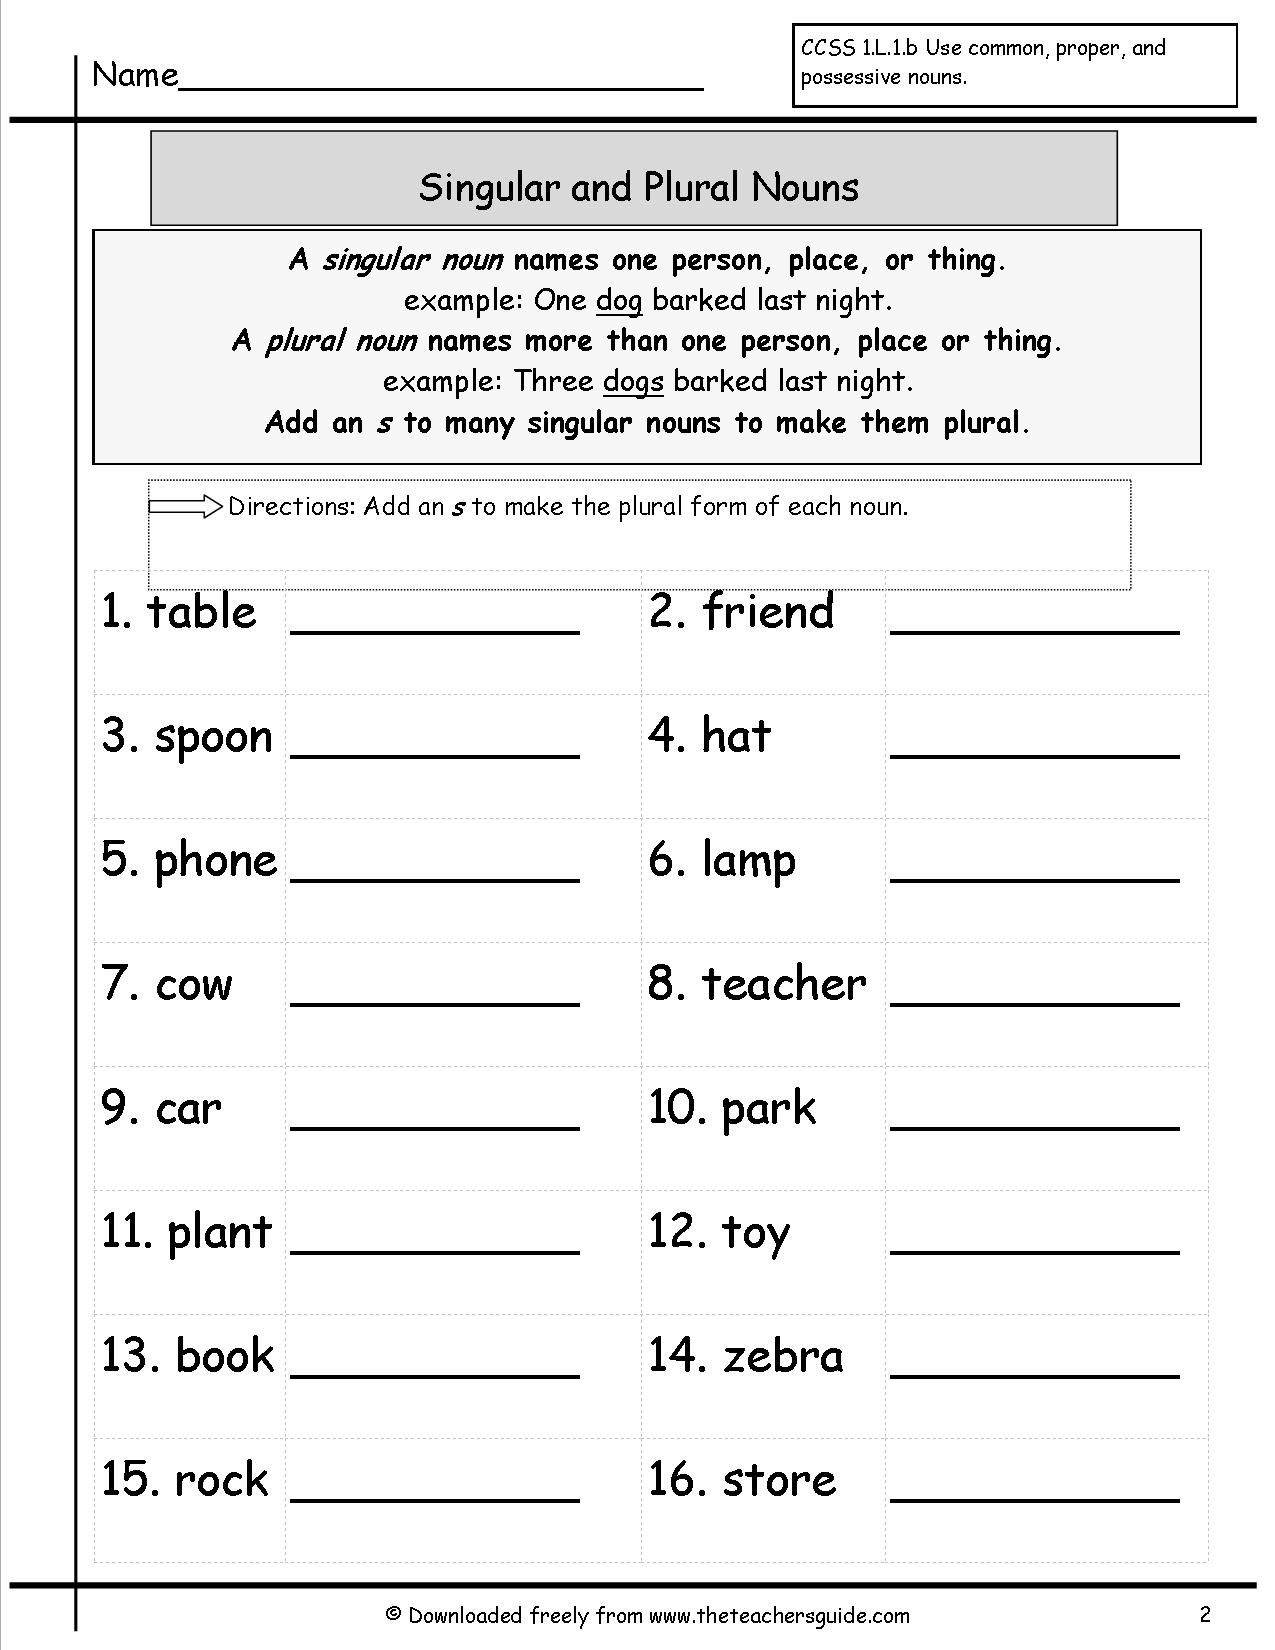 Singular And Plural Nouns Worksheets From The Teacher S